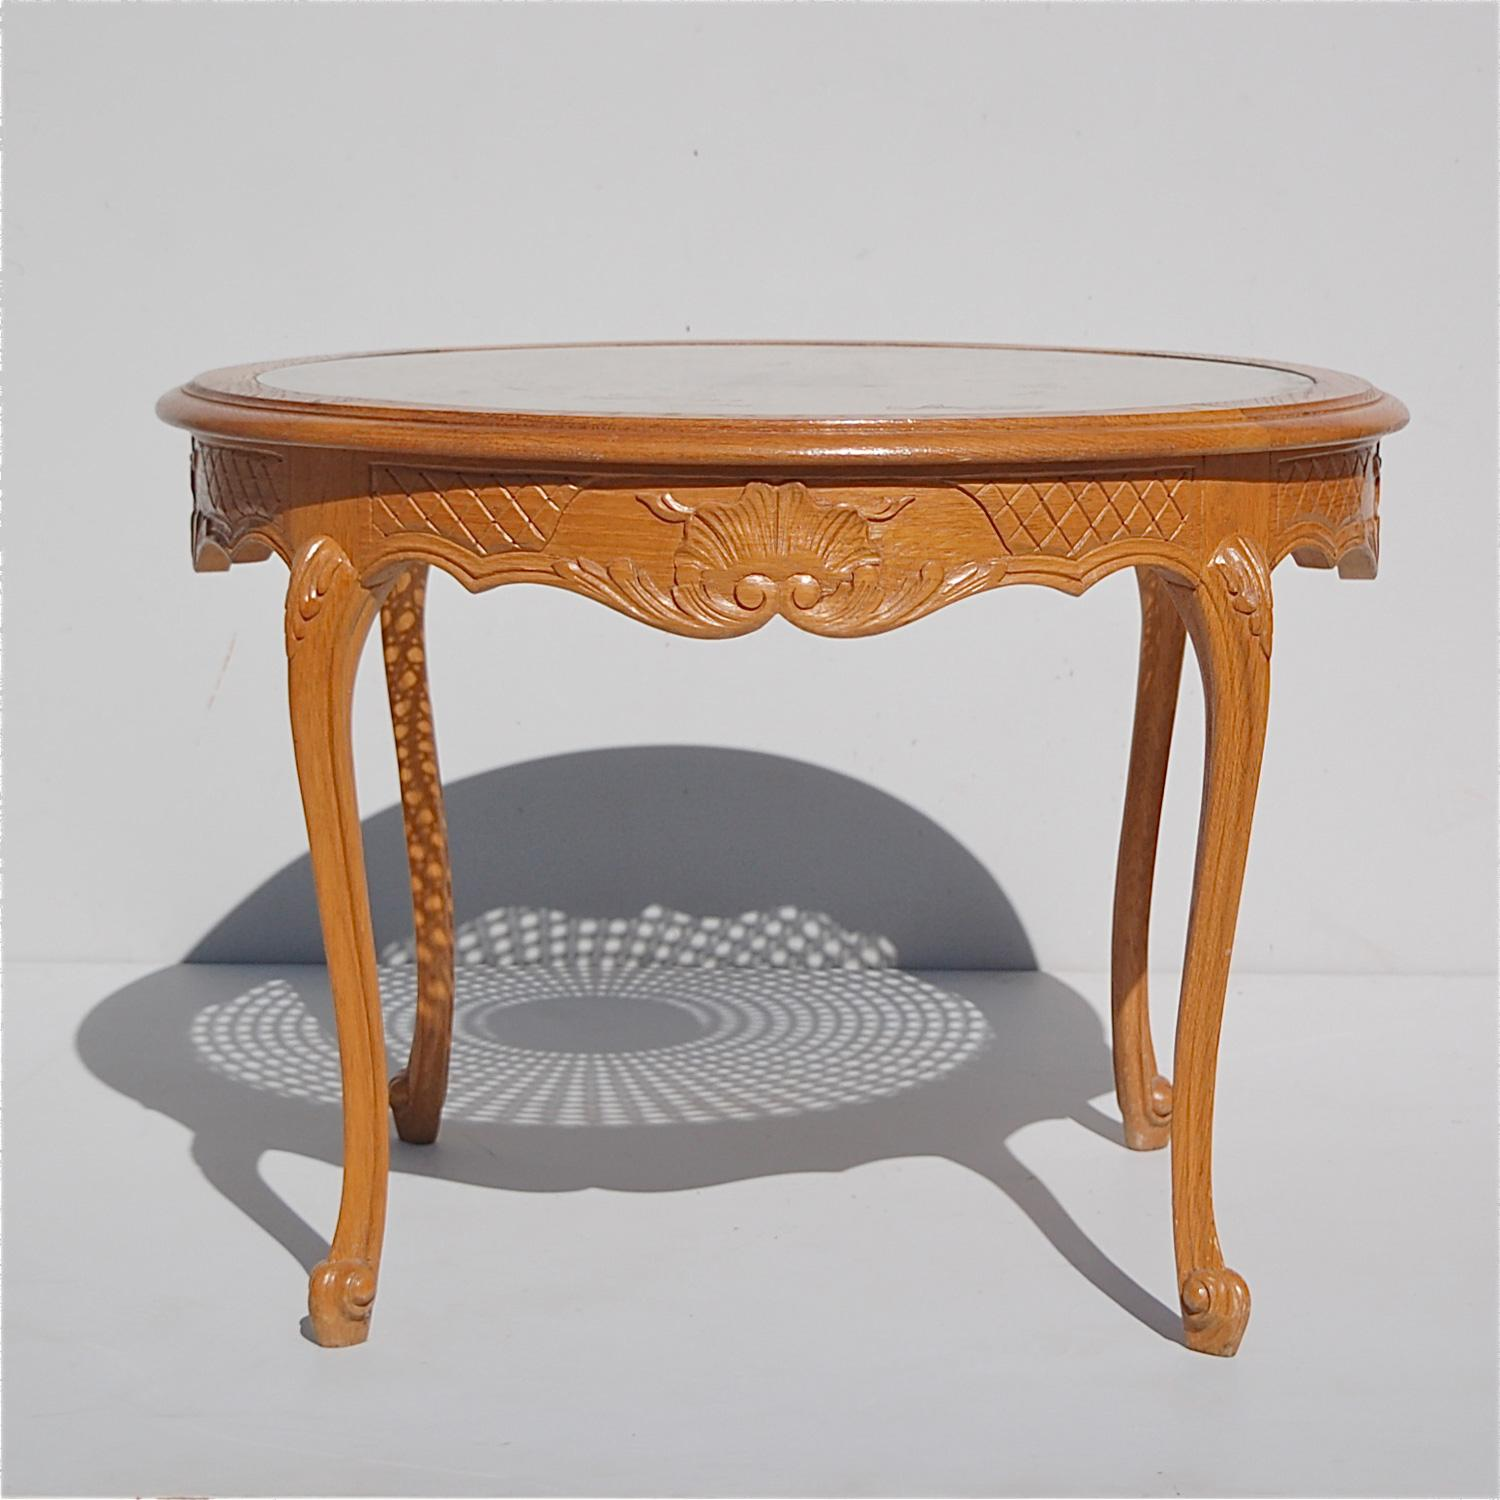 Superieur French Provincial Circular Coffee Table With Cane And Glass Top, 1950s,  France For Sale